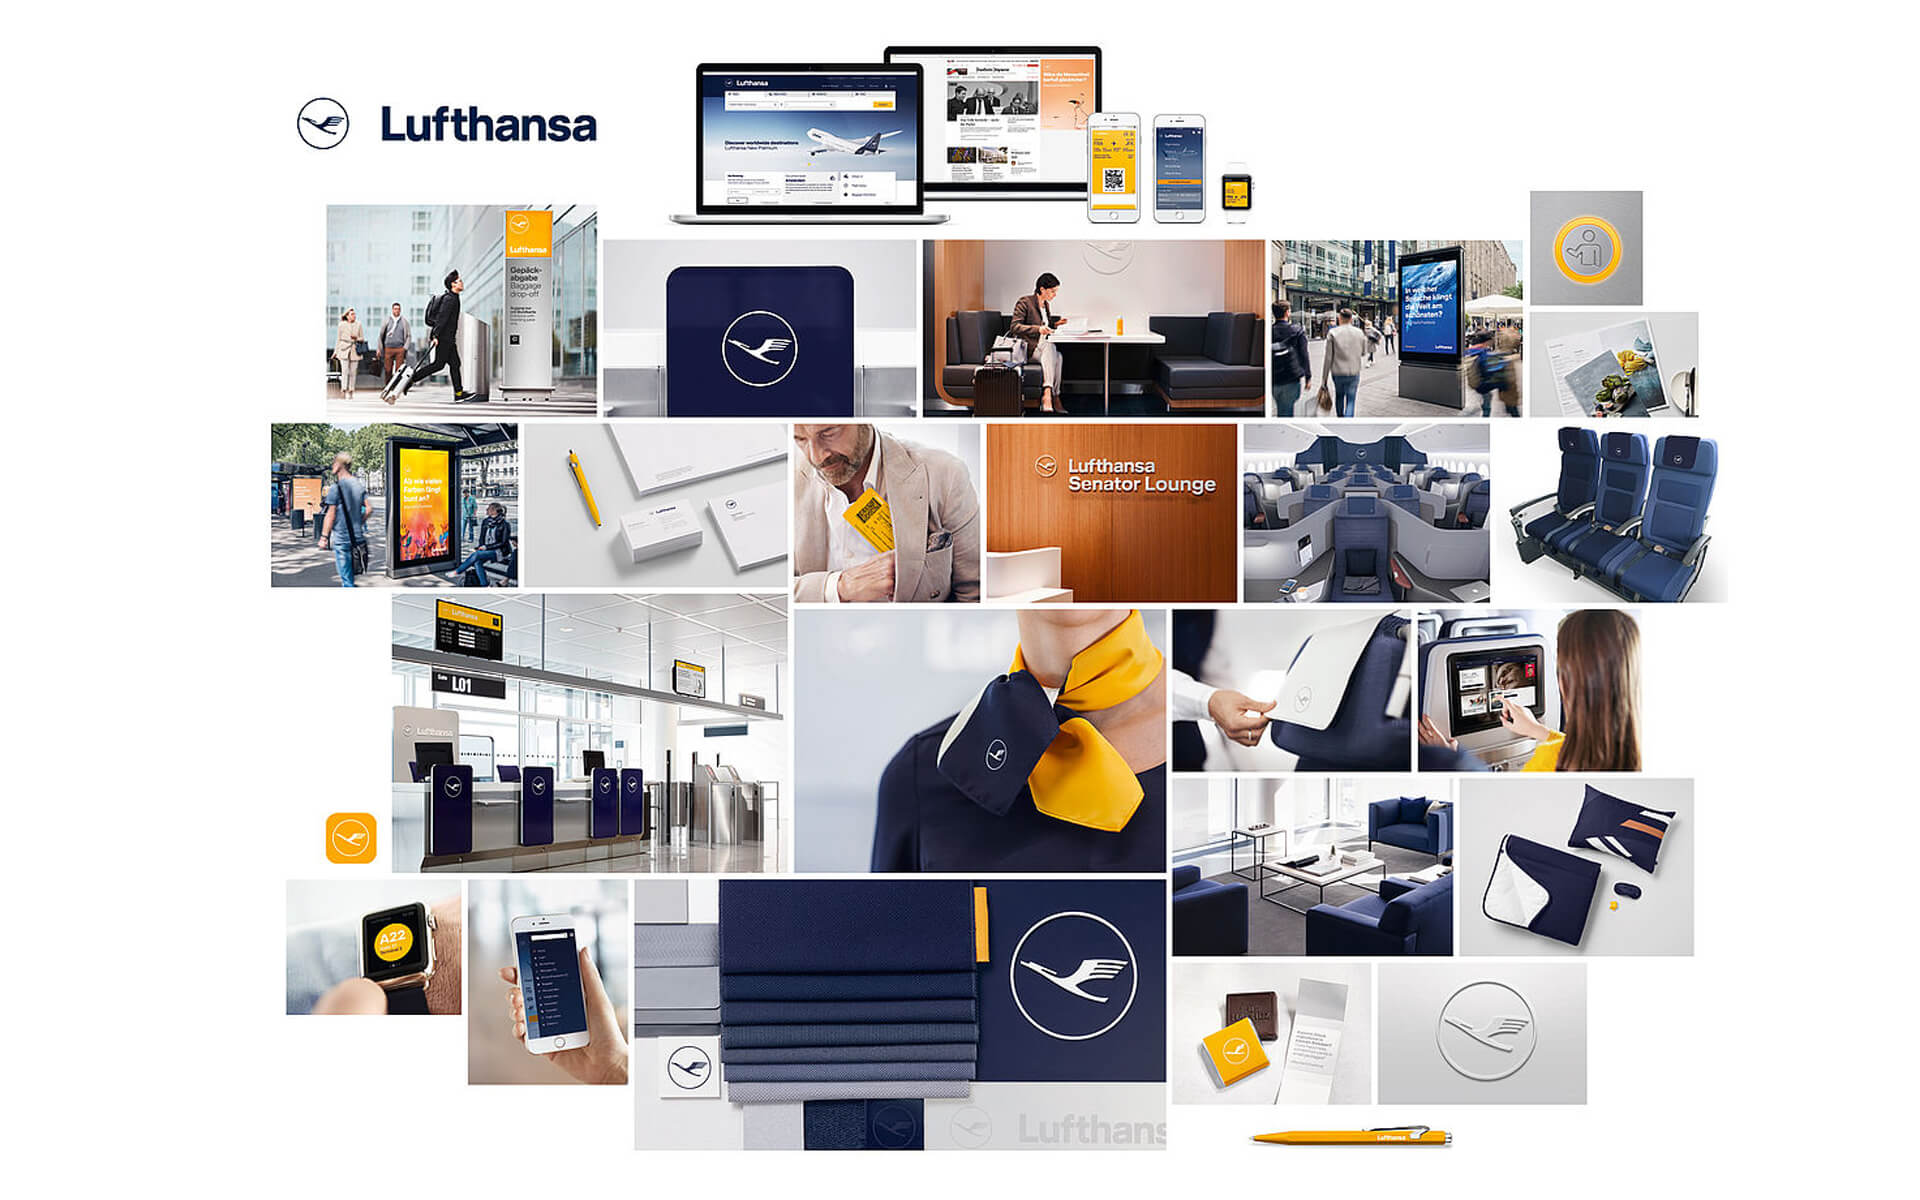 Lufthansa Corporate Design 2018, Medien